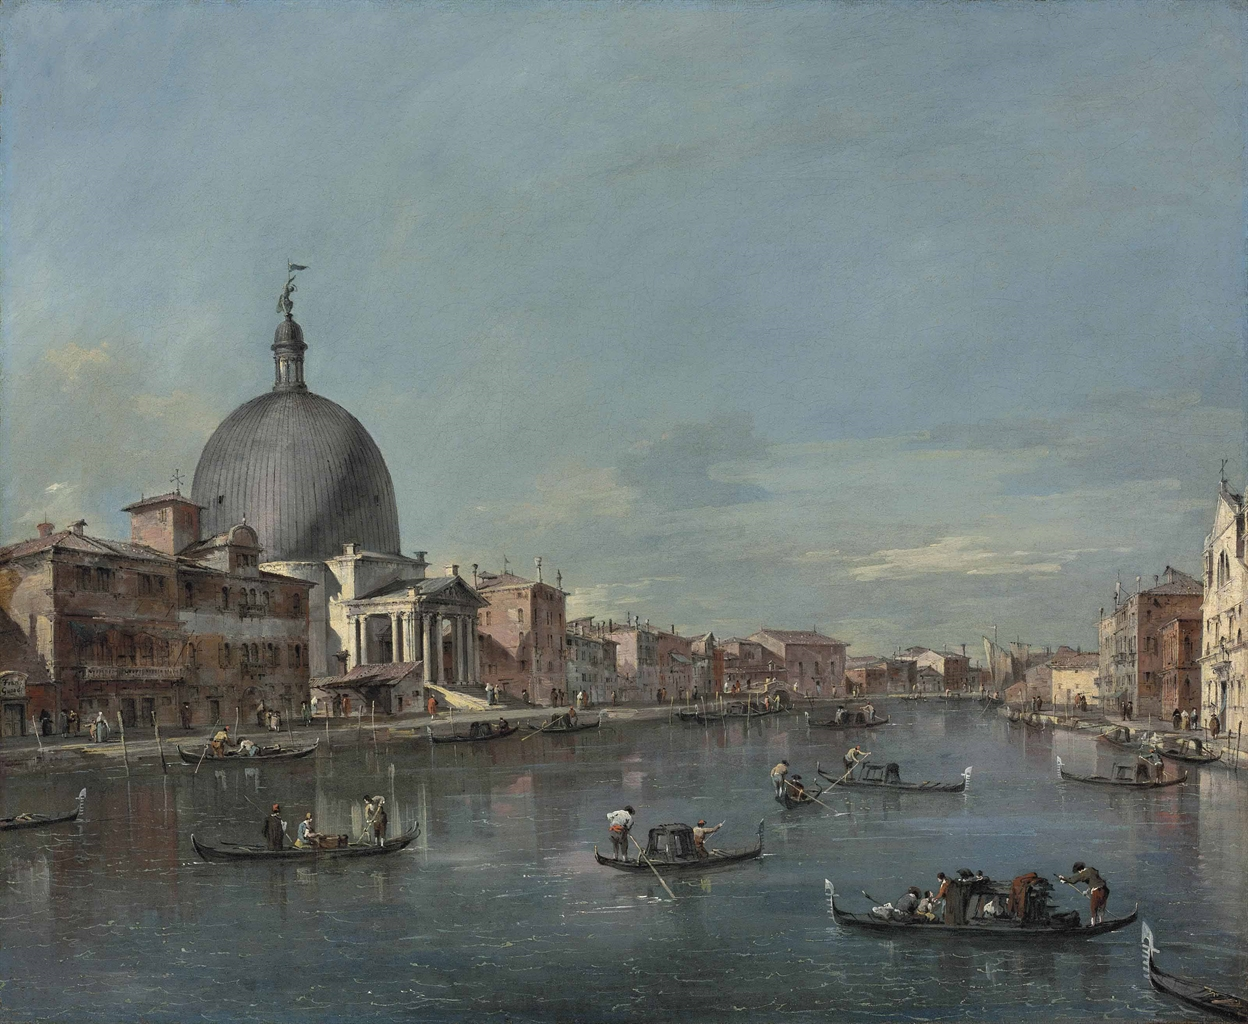 The Grand Canal, Venice, with San Simeone Piccolo